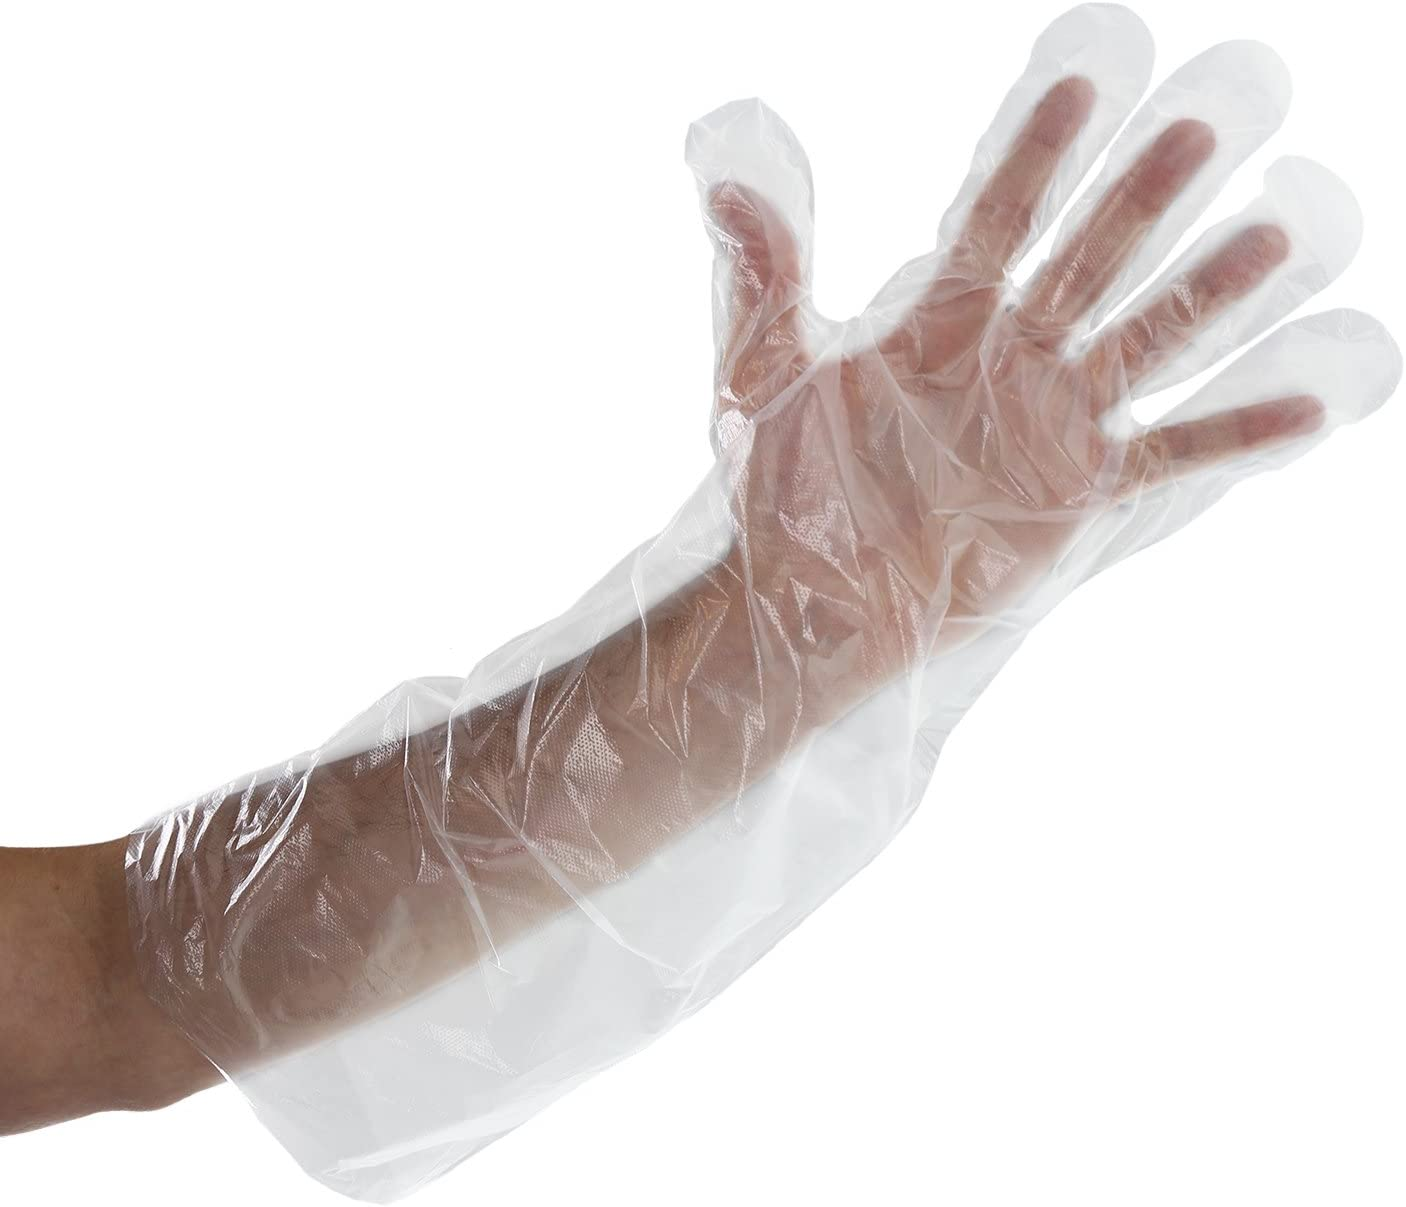 Royal Elbow Disposable Poly Gloves, 21.5 Inch, Box of 100